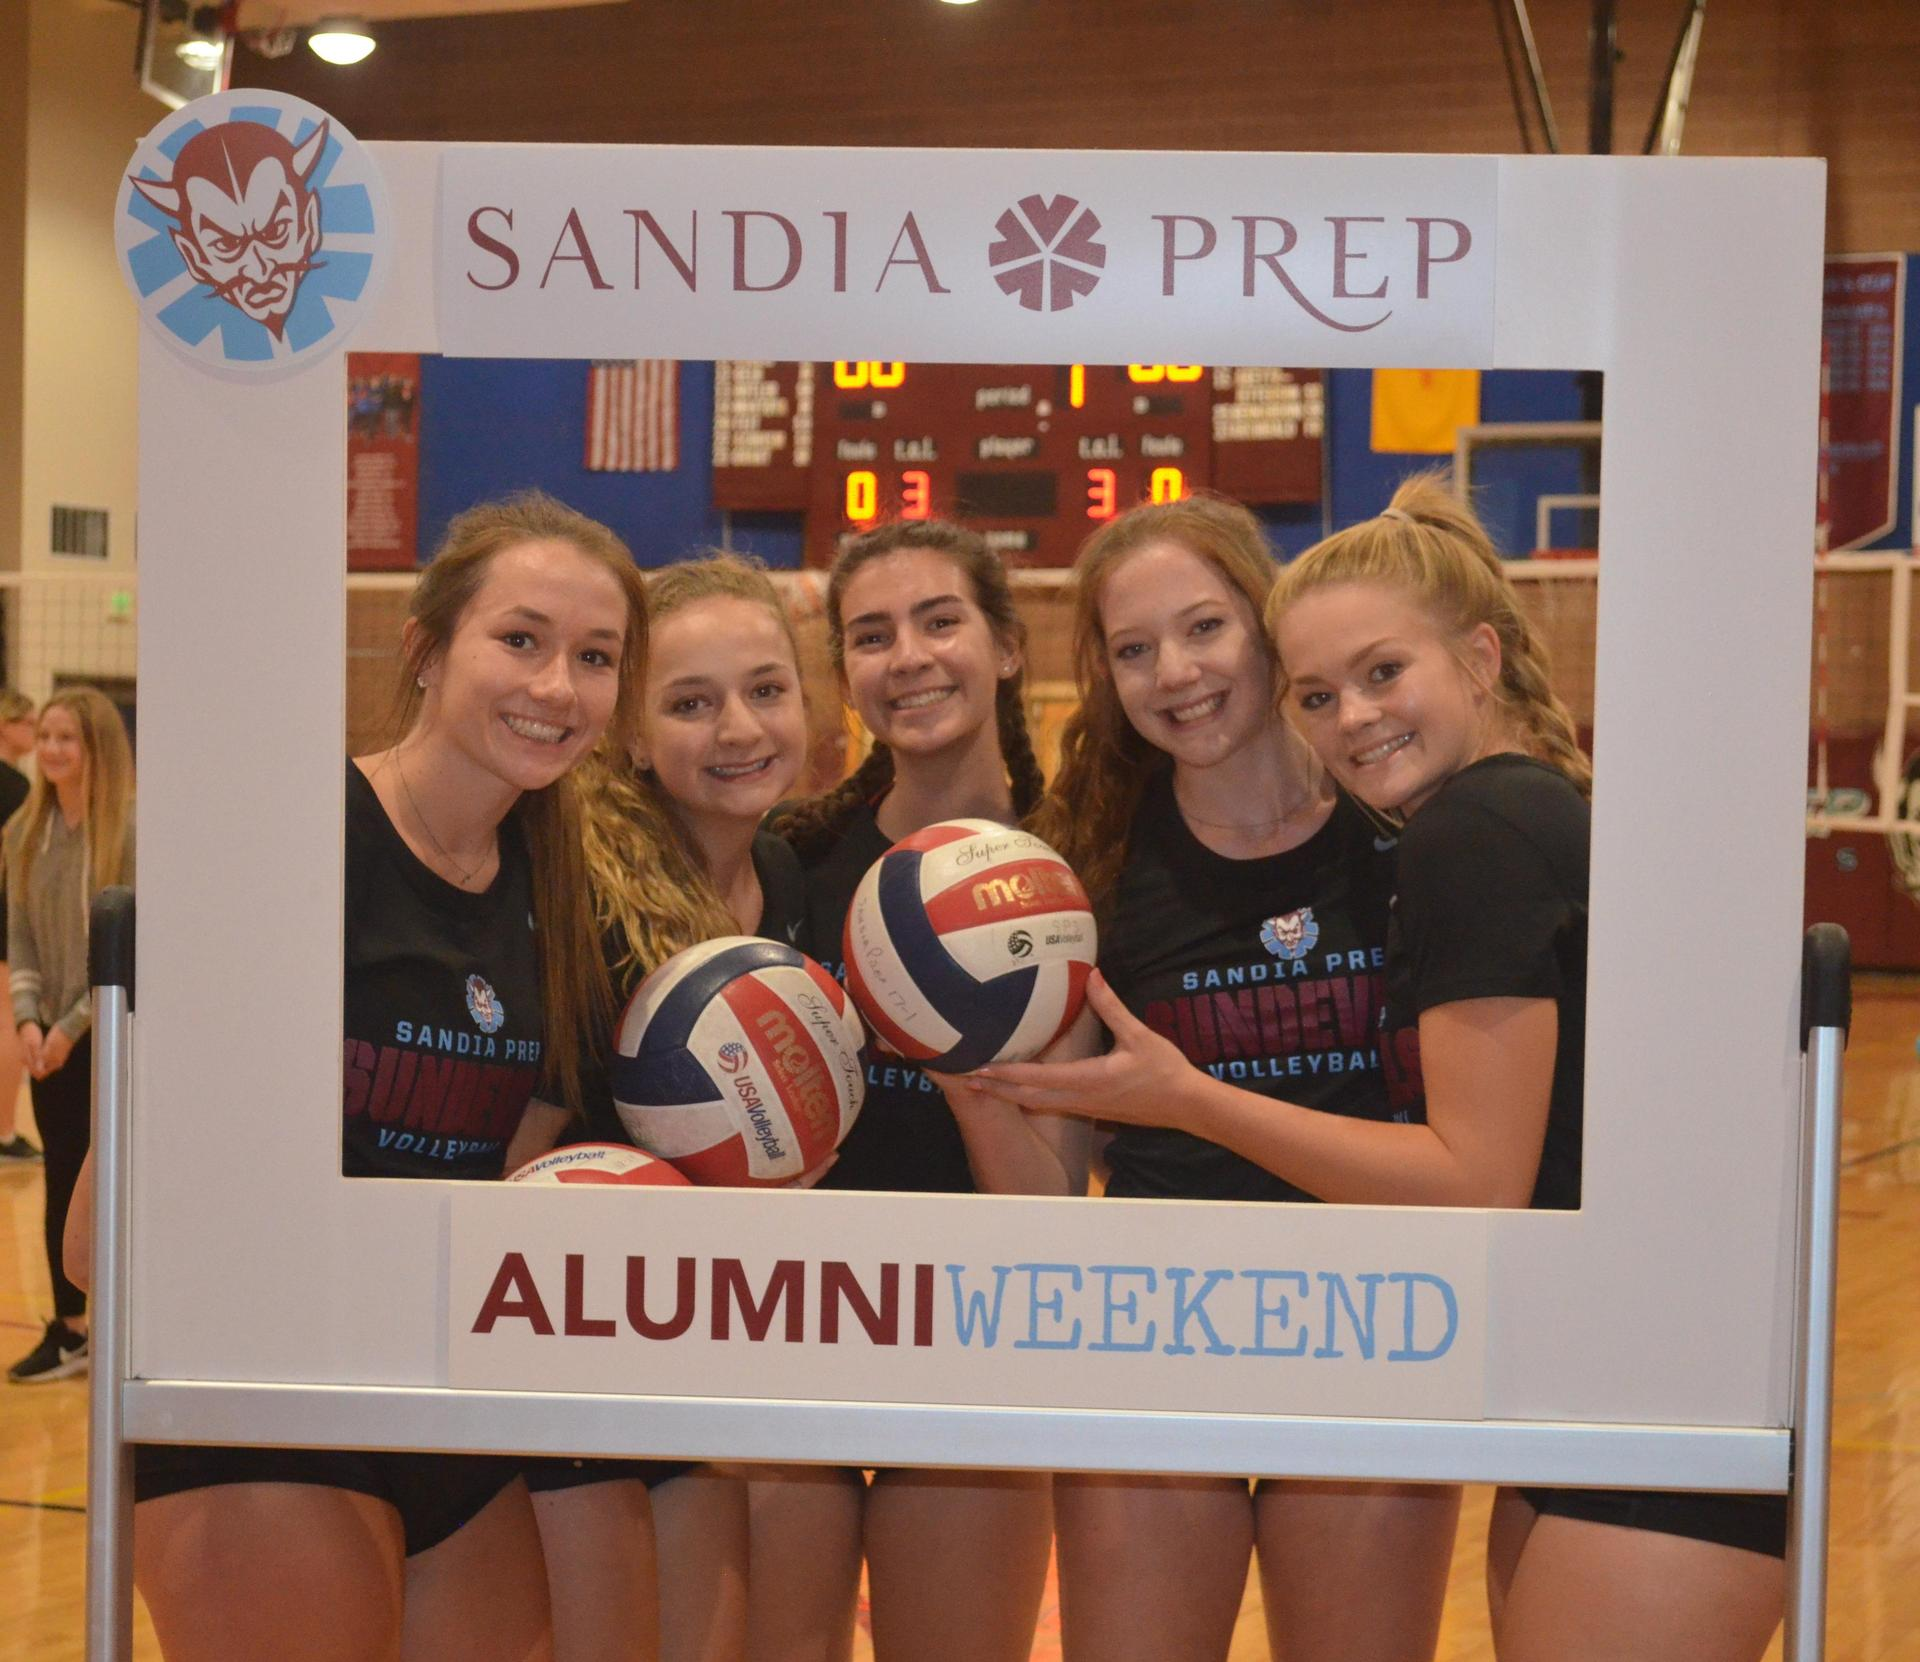 Students hold volleyballs and smile in event frame